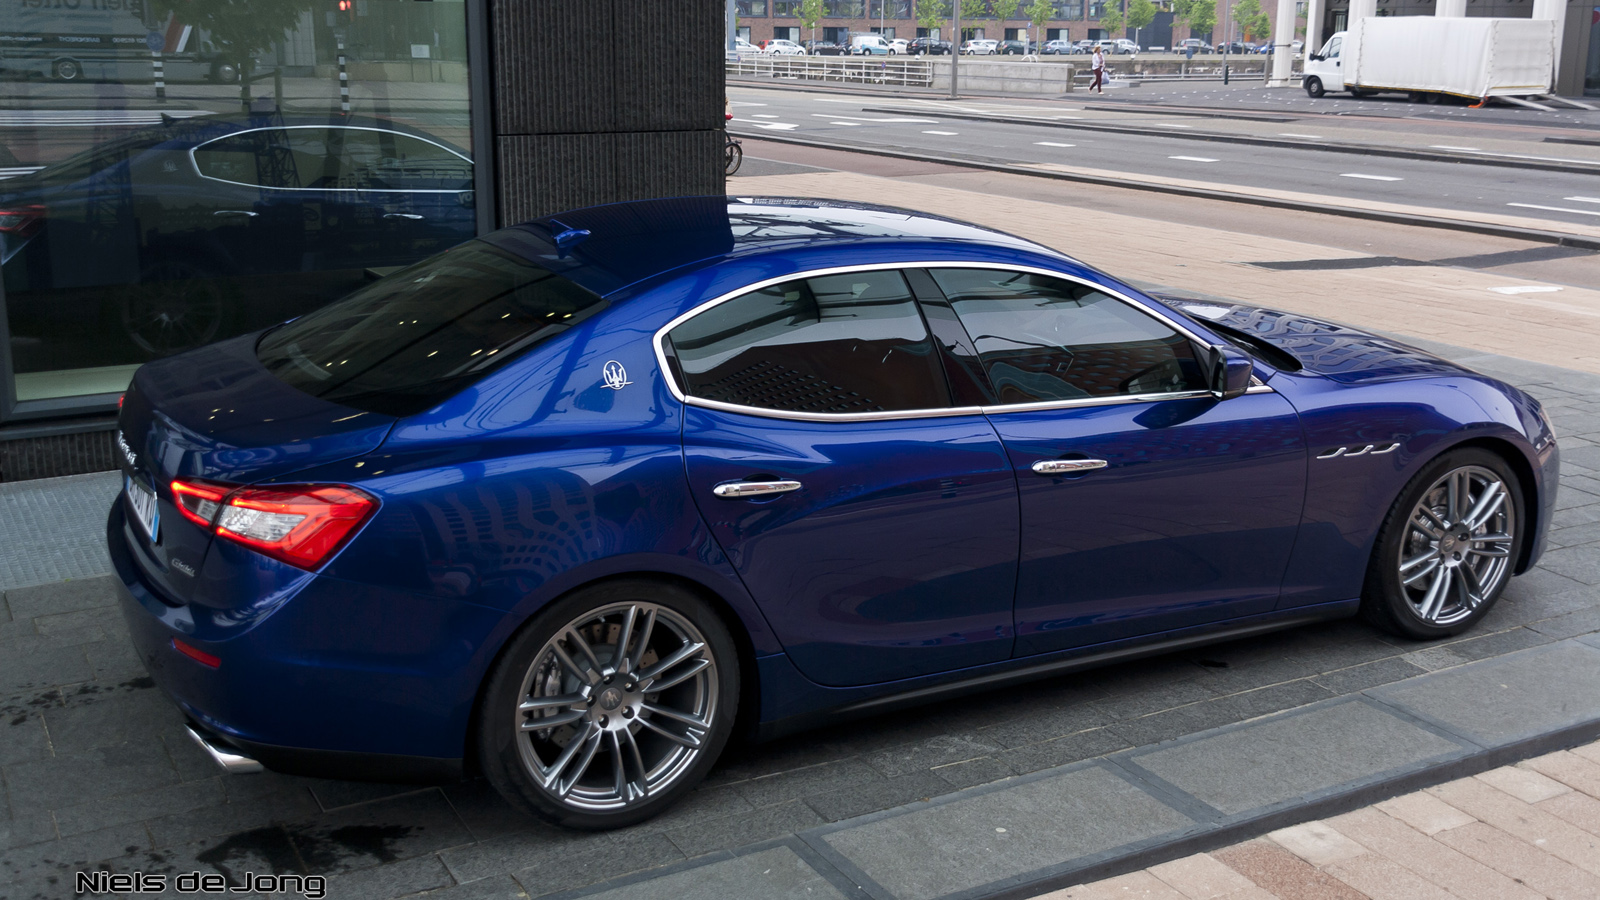 More Pictures Of The Maserati Ghibli In Rotterdam